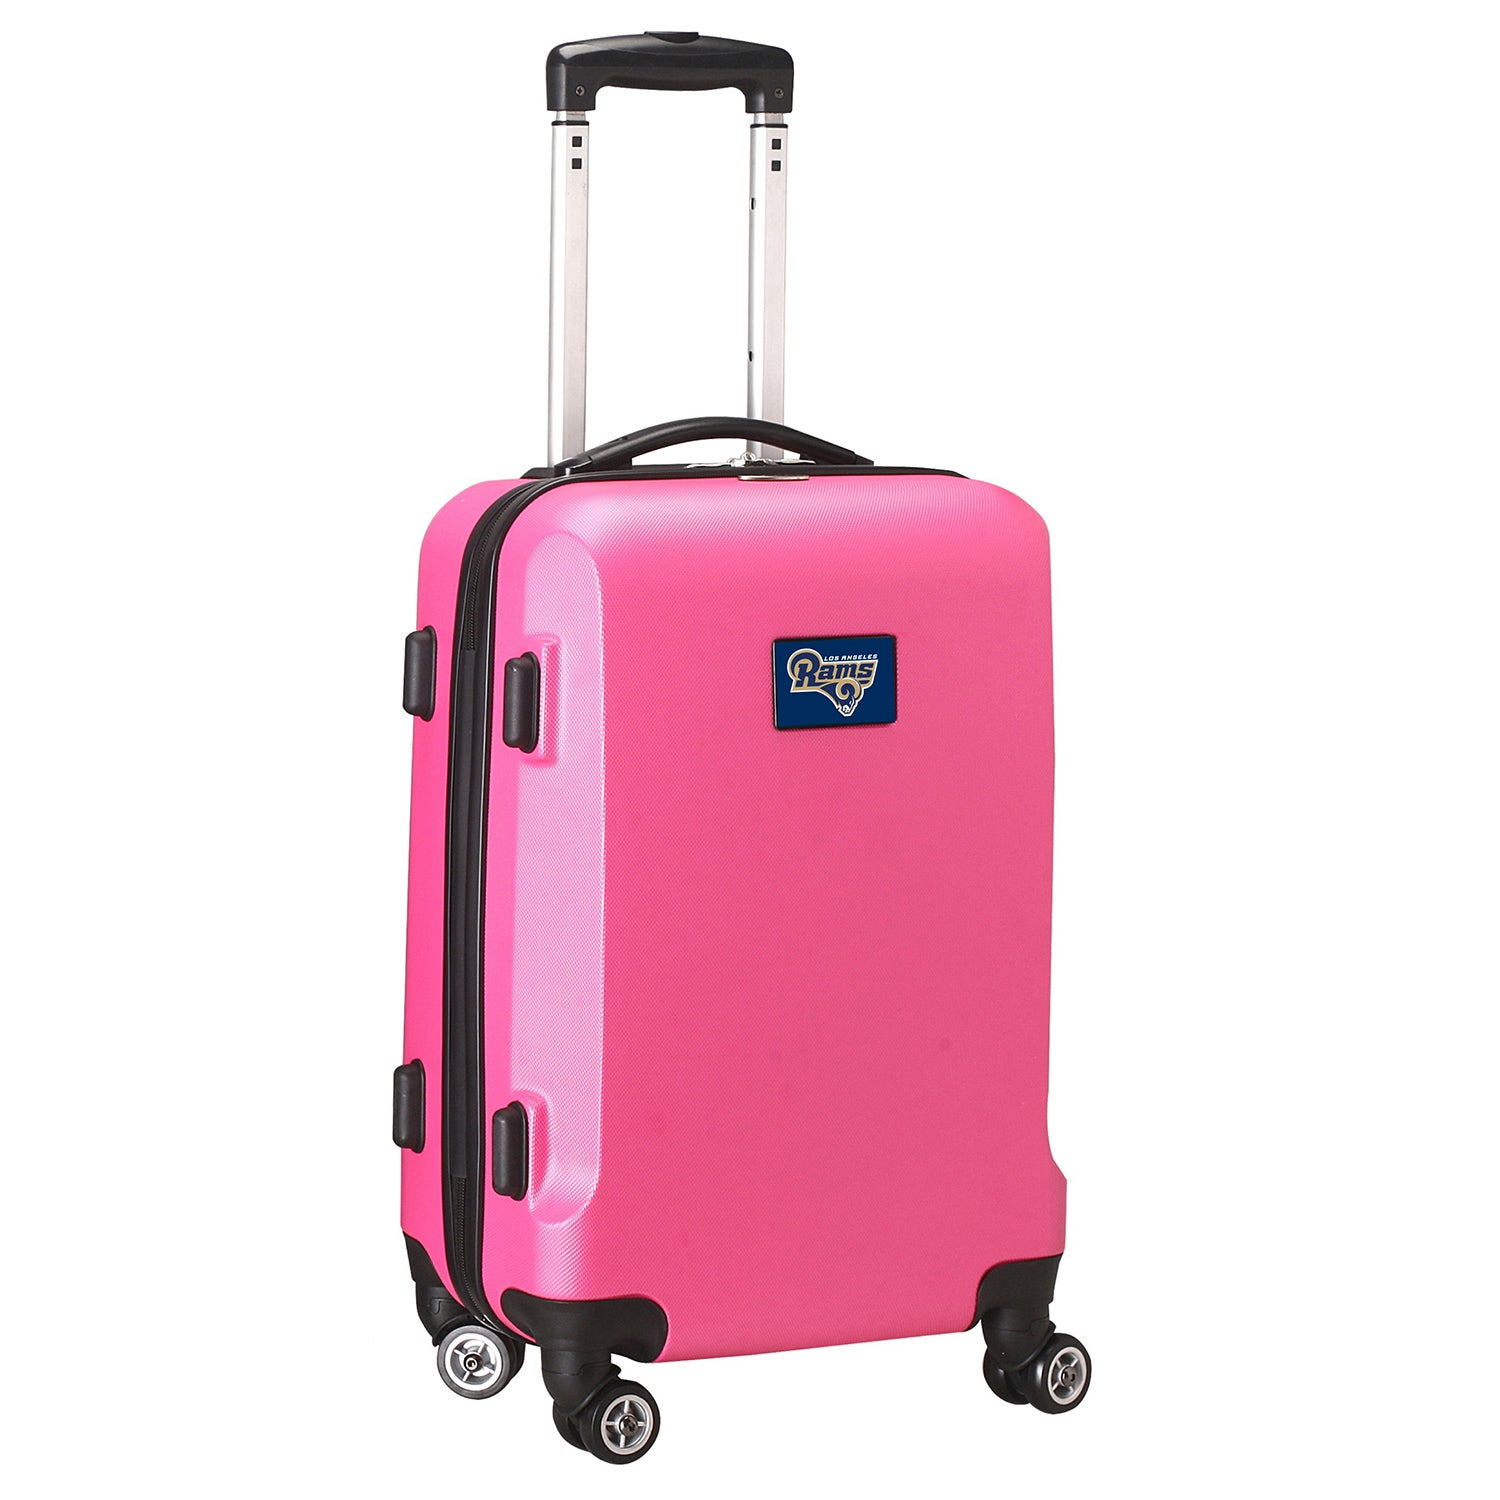 DENCO Los Angeles Rams Pink ABS 20-inch Carry-on Hardside...